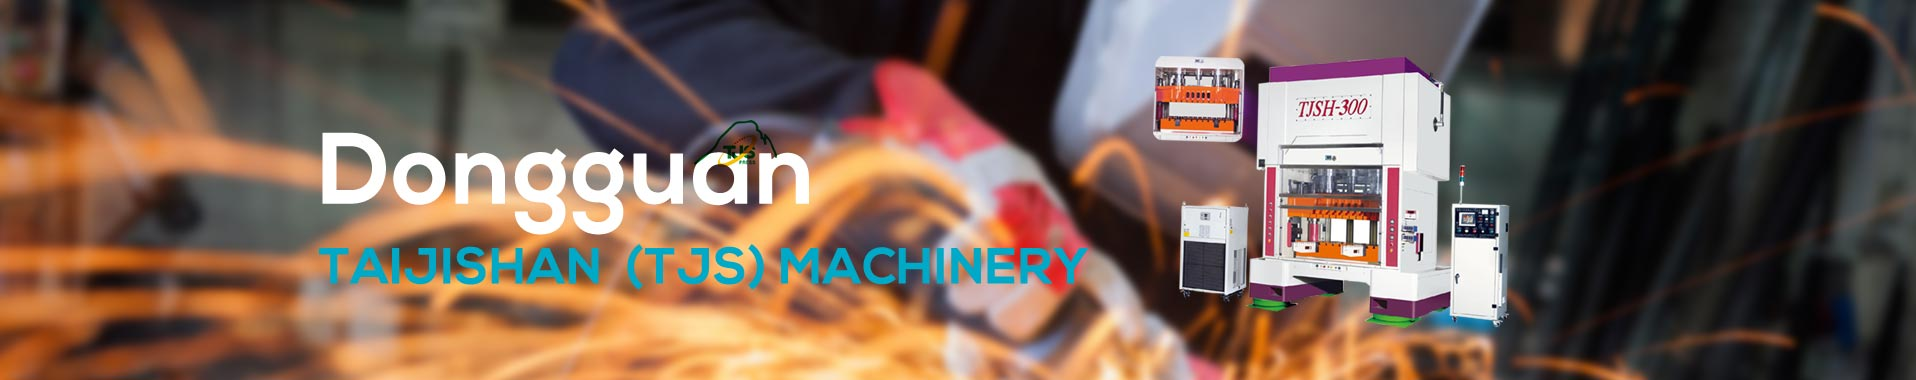 Dongguan Taijishan Machinery Equipment Co. Ltd. Banner